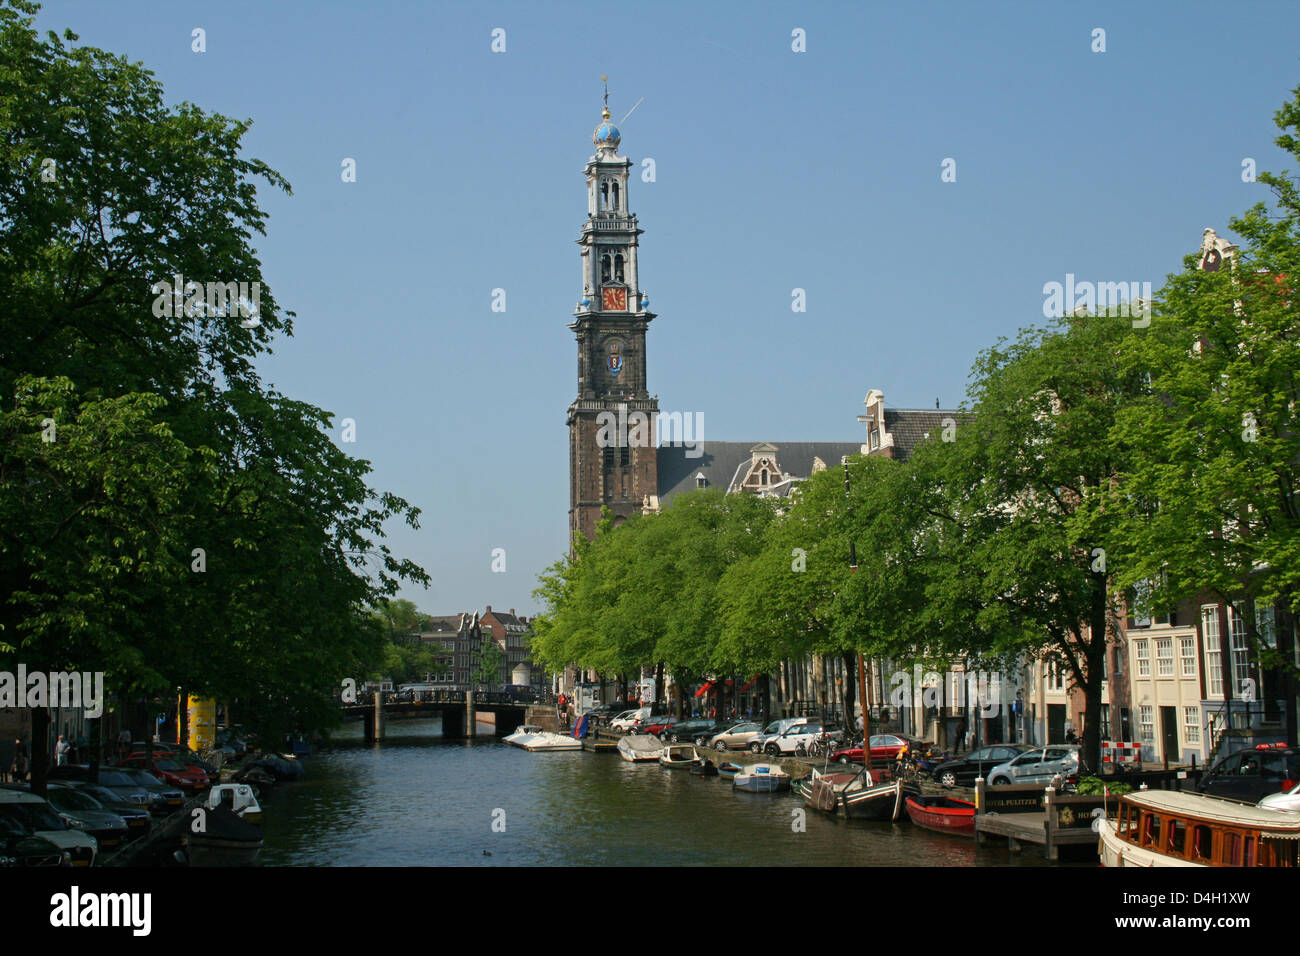 The Netherlands Holland Amsterdam Prinsengracht 279-281 Westerkerk Church 1620-1631 Architect Hendrick de Keyser - Stock Image